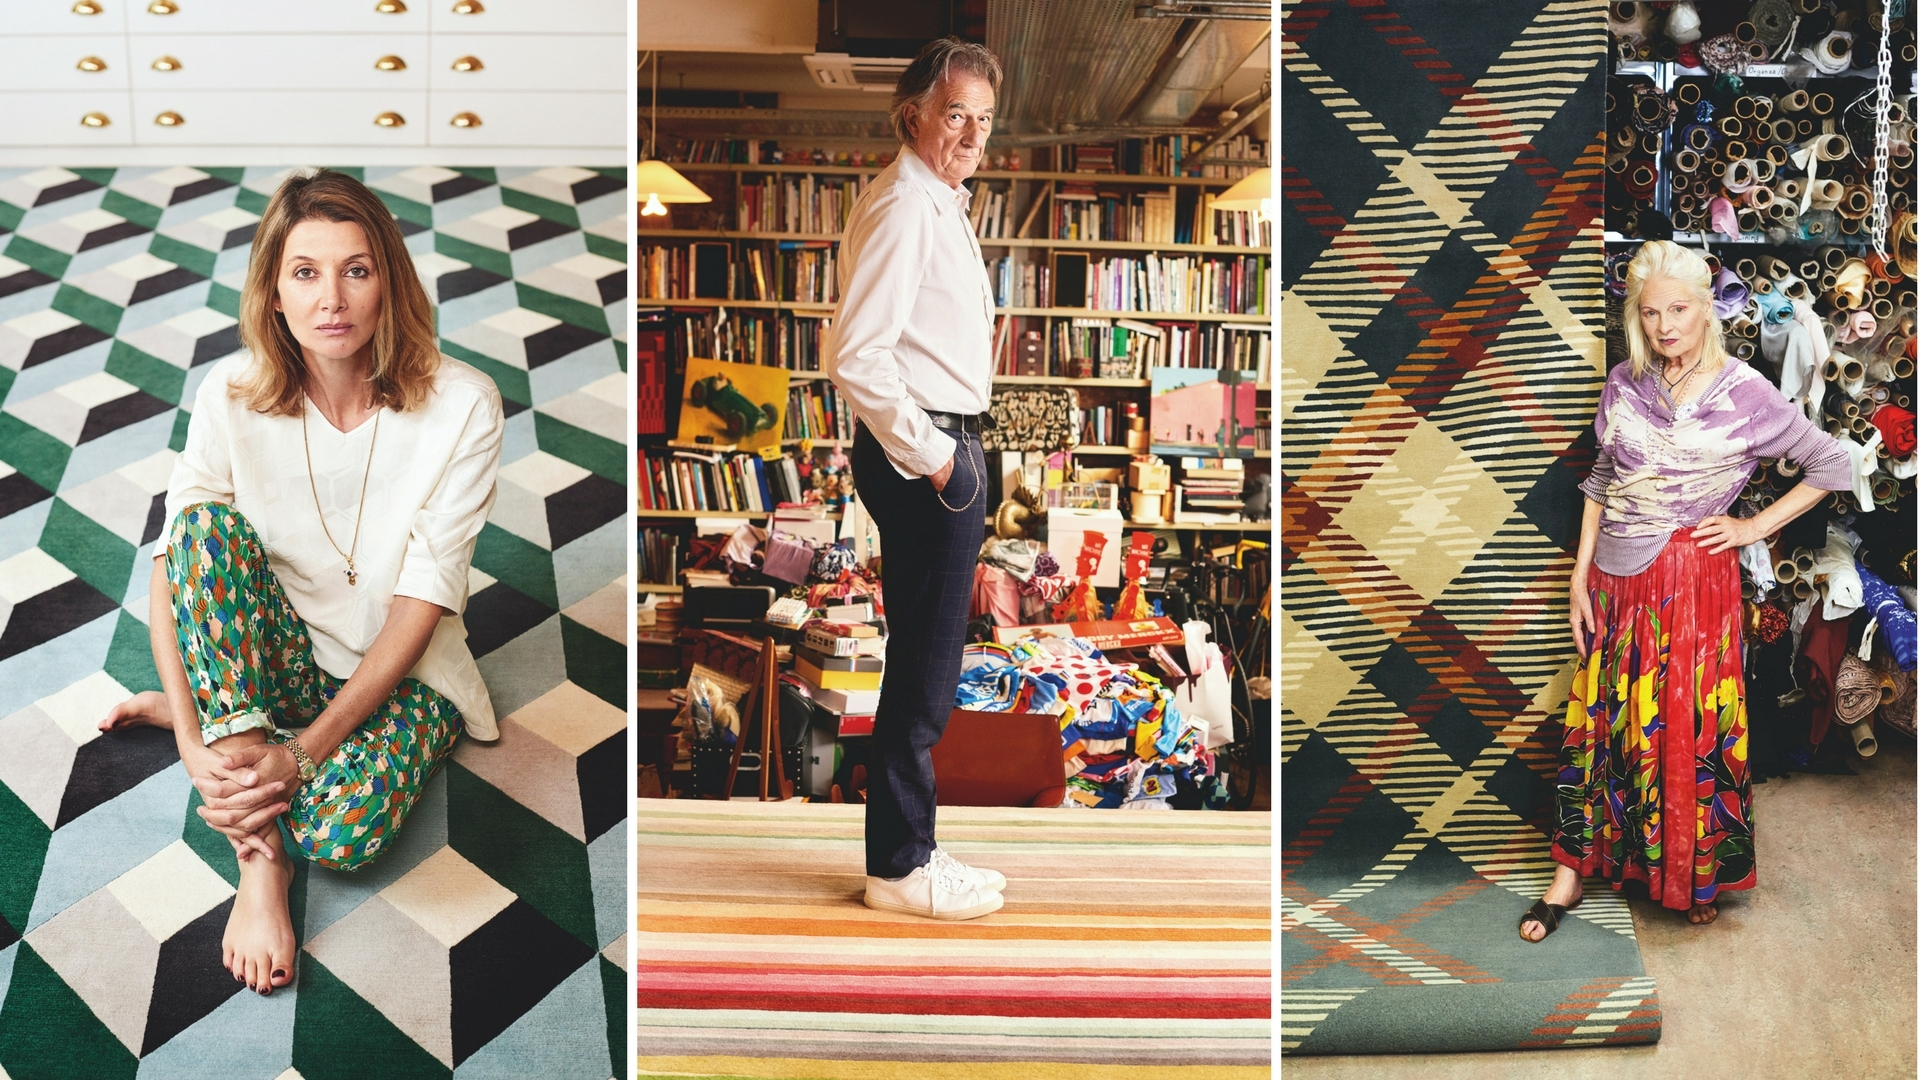 Fashionable Floors: Here's How The Rug Company Celebrated Its 20th Anniversary